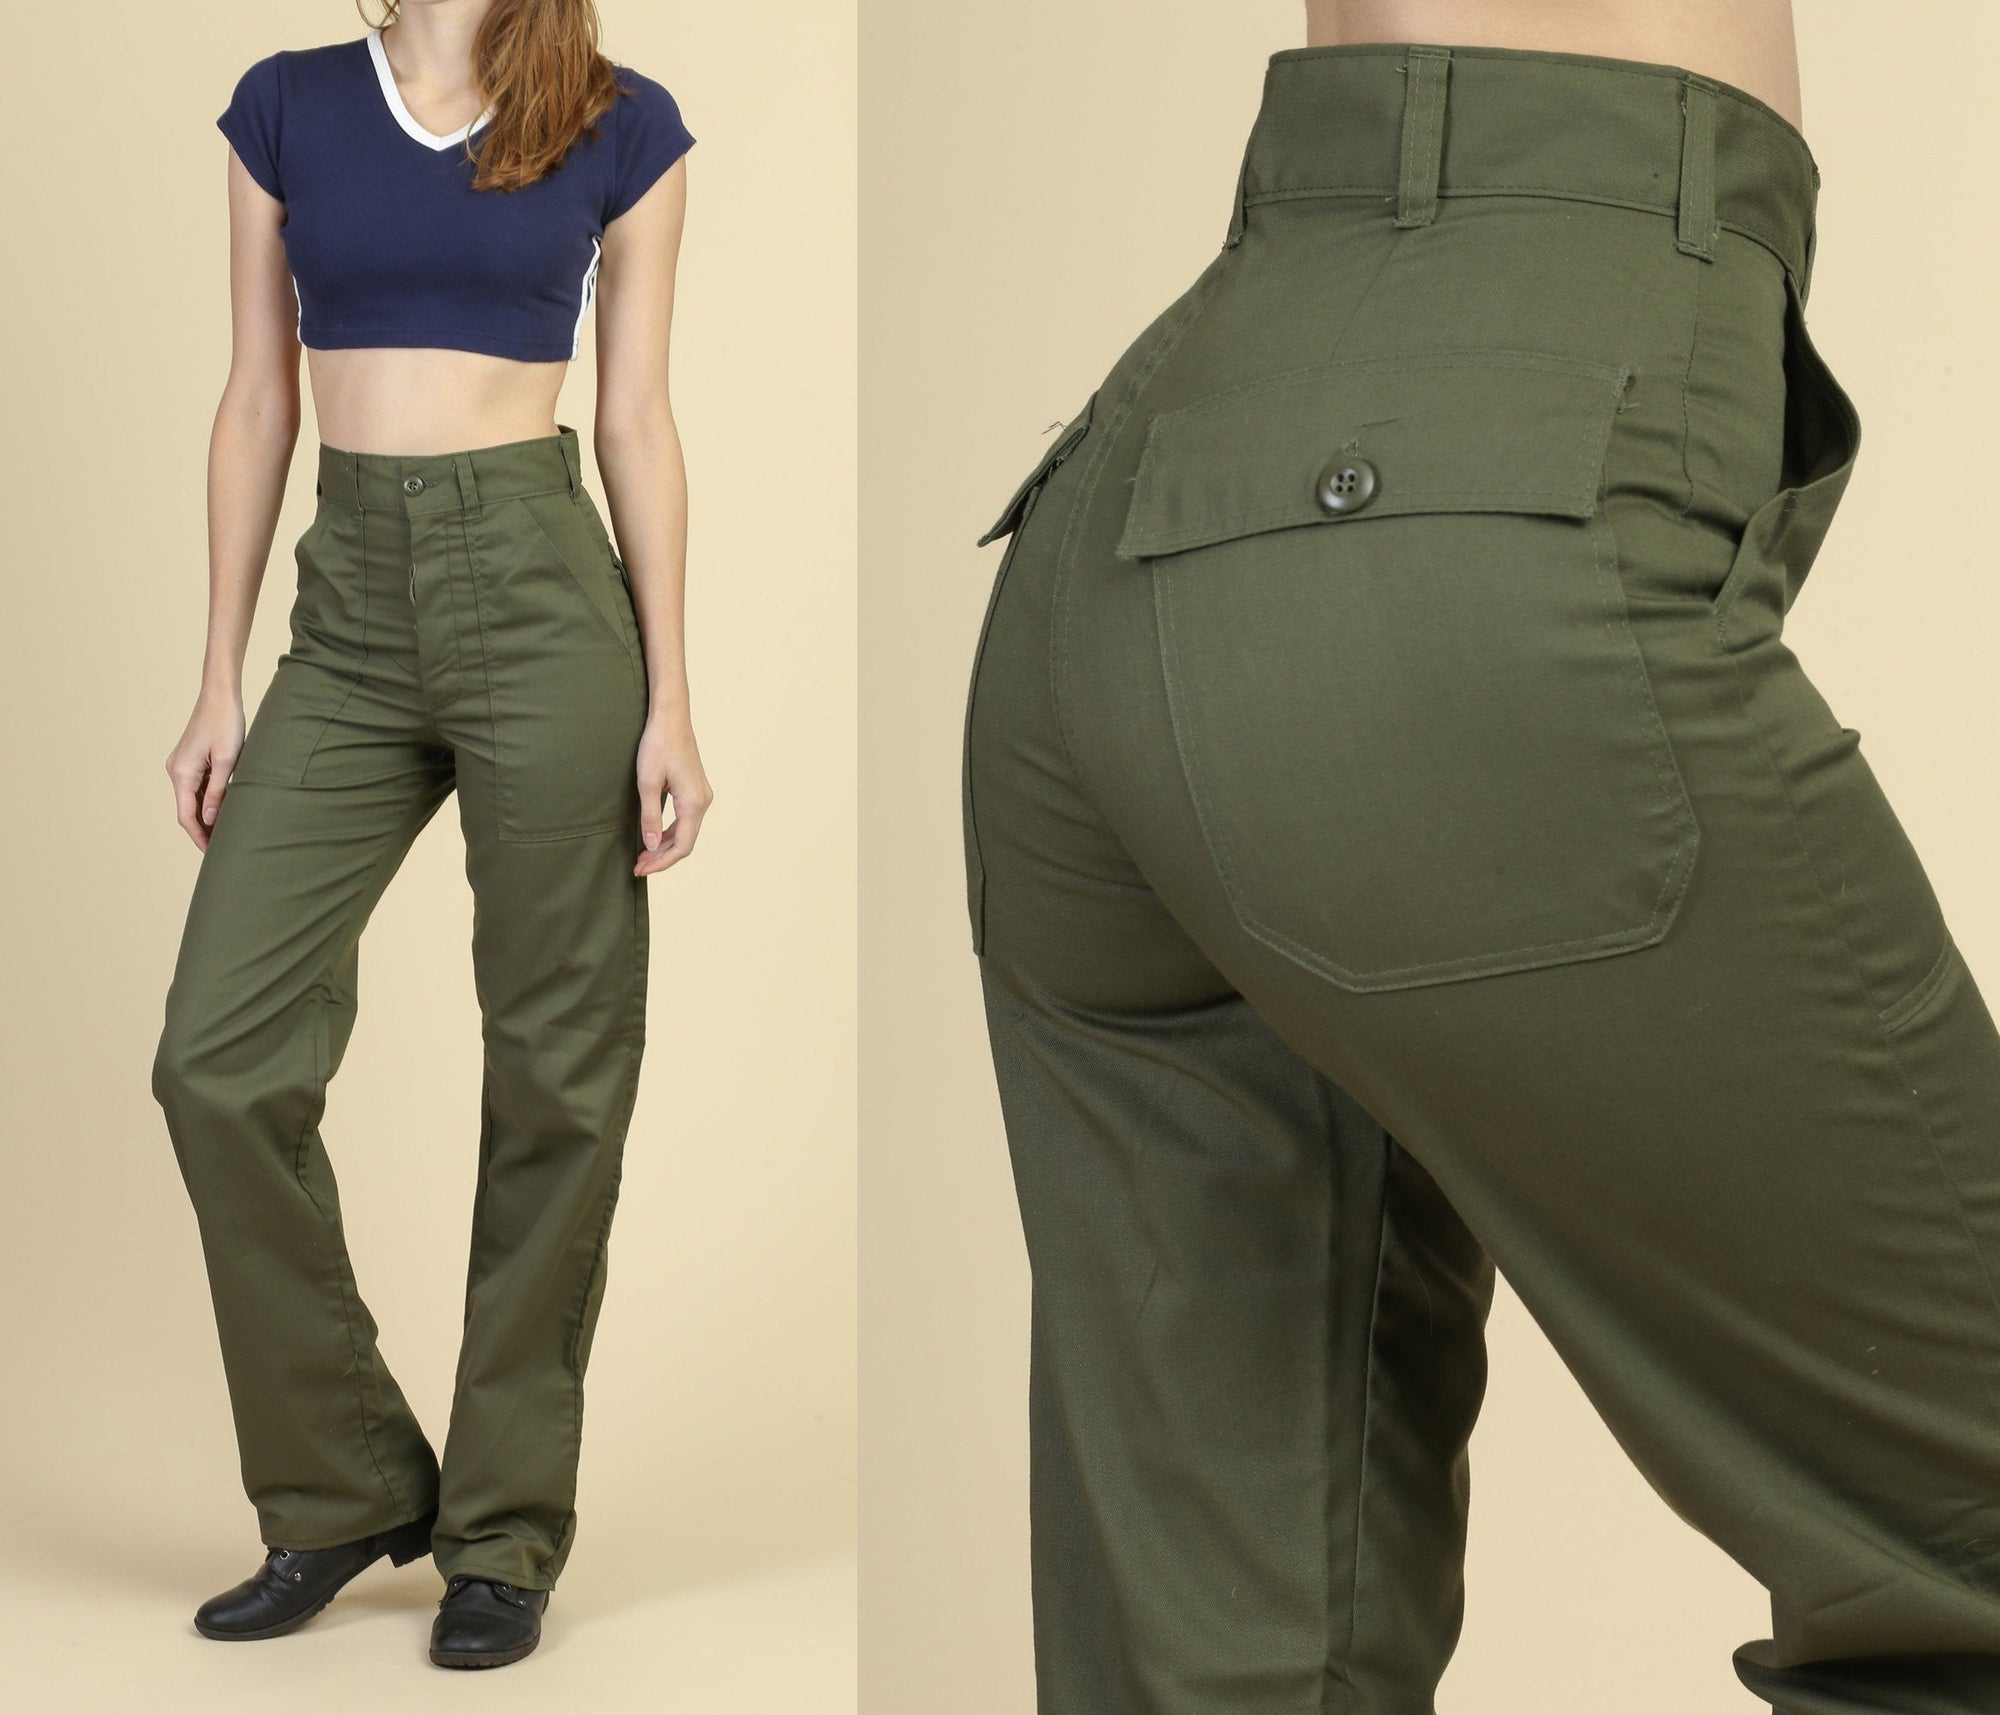 70s Olive Drab High Waist Army Utility Trousers - Small